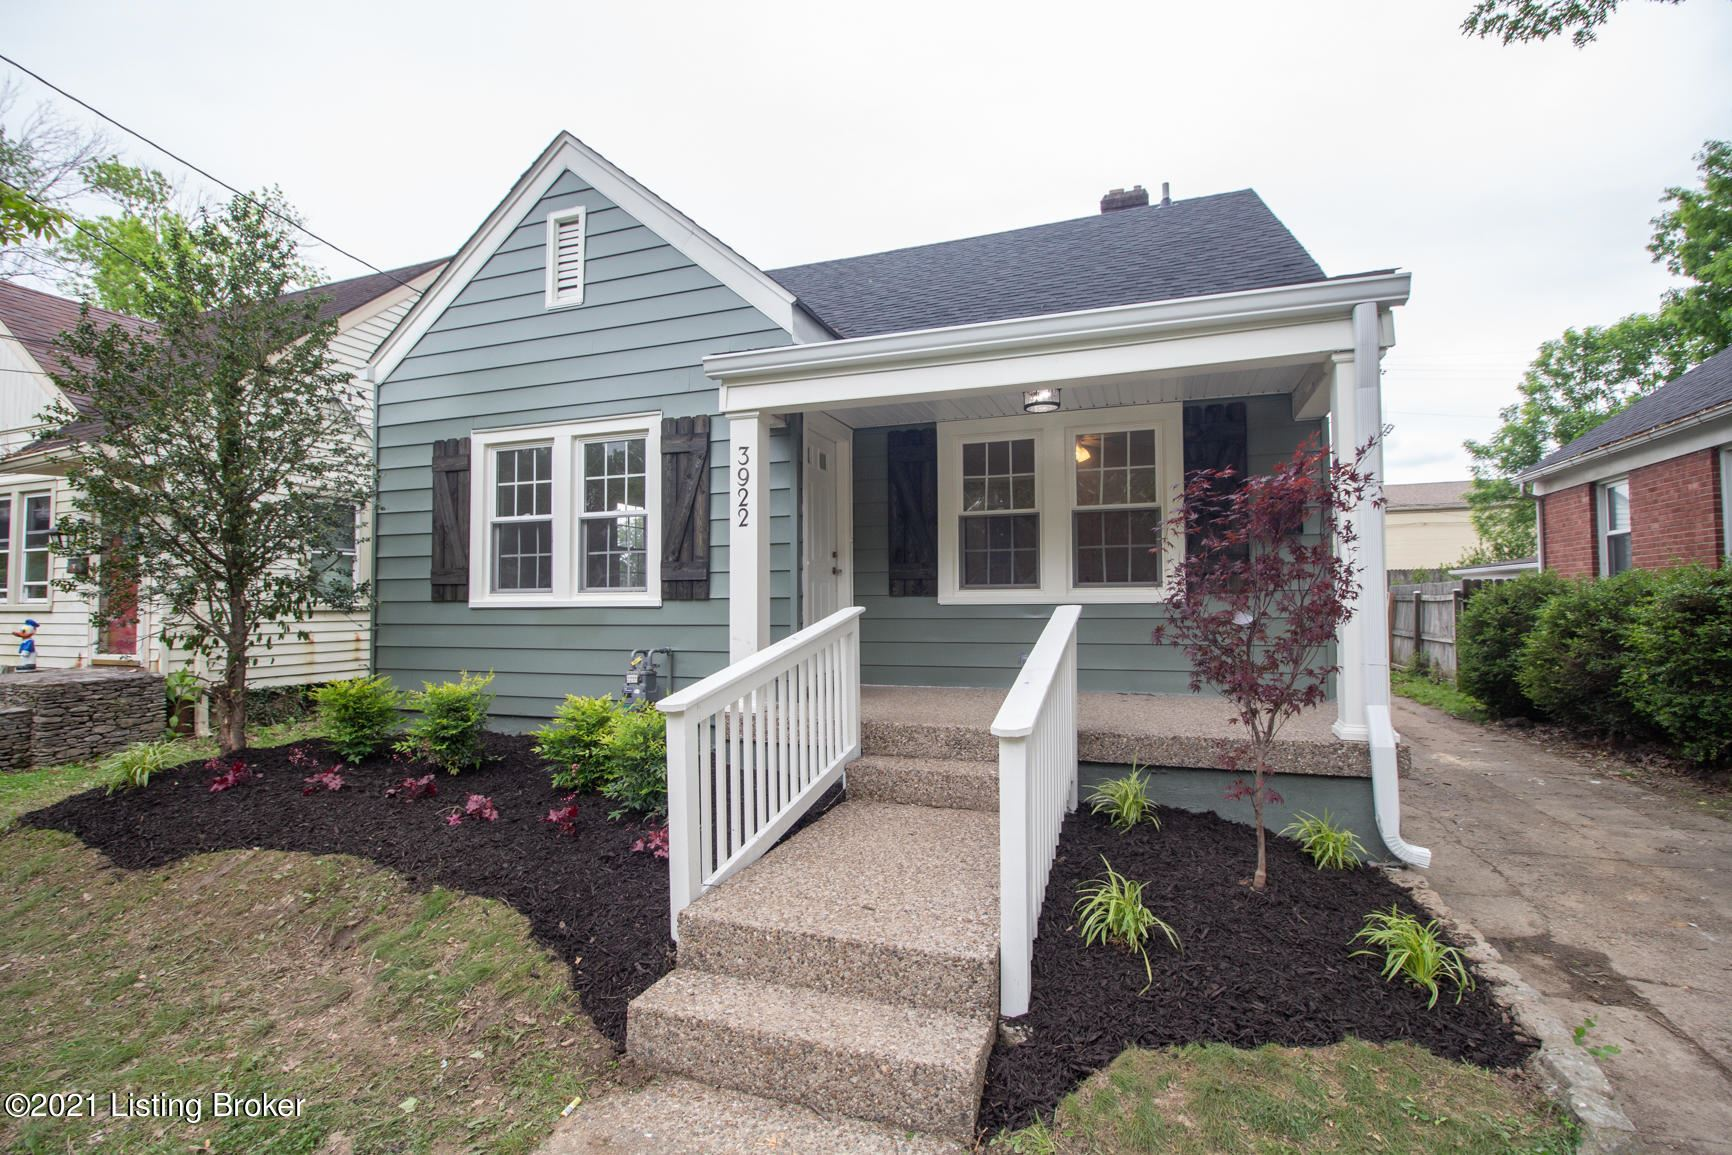 Photo of 3922 Staebler Ave, Louisville, KY 40207 (MLS # 1584892)